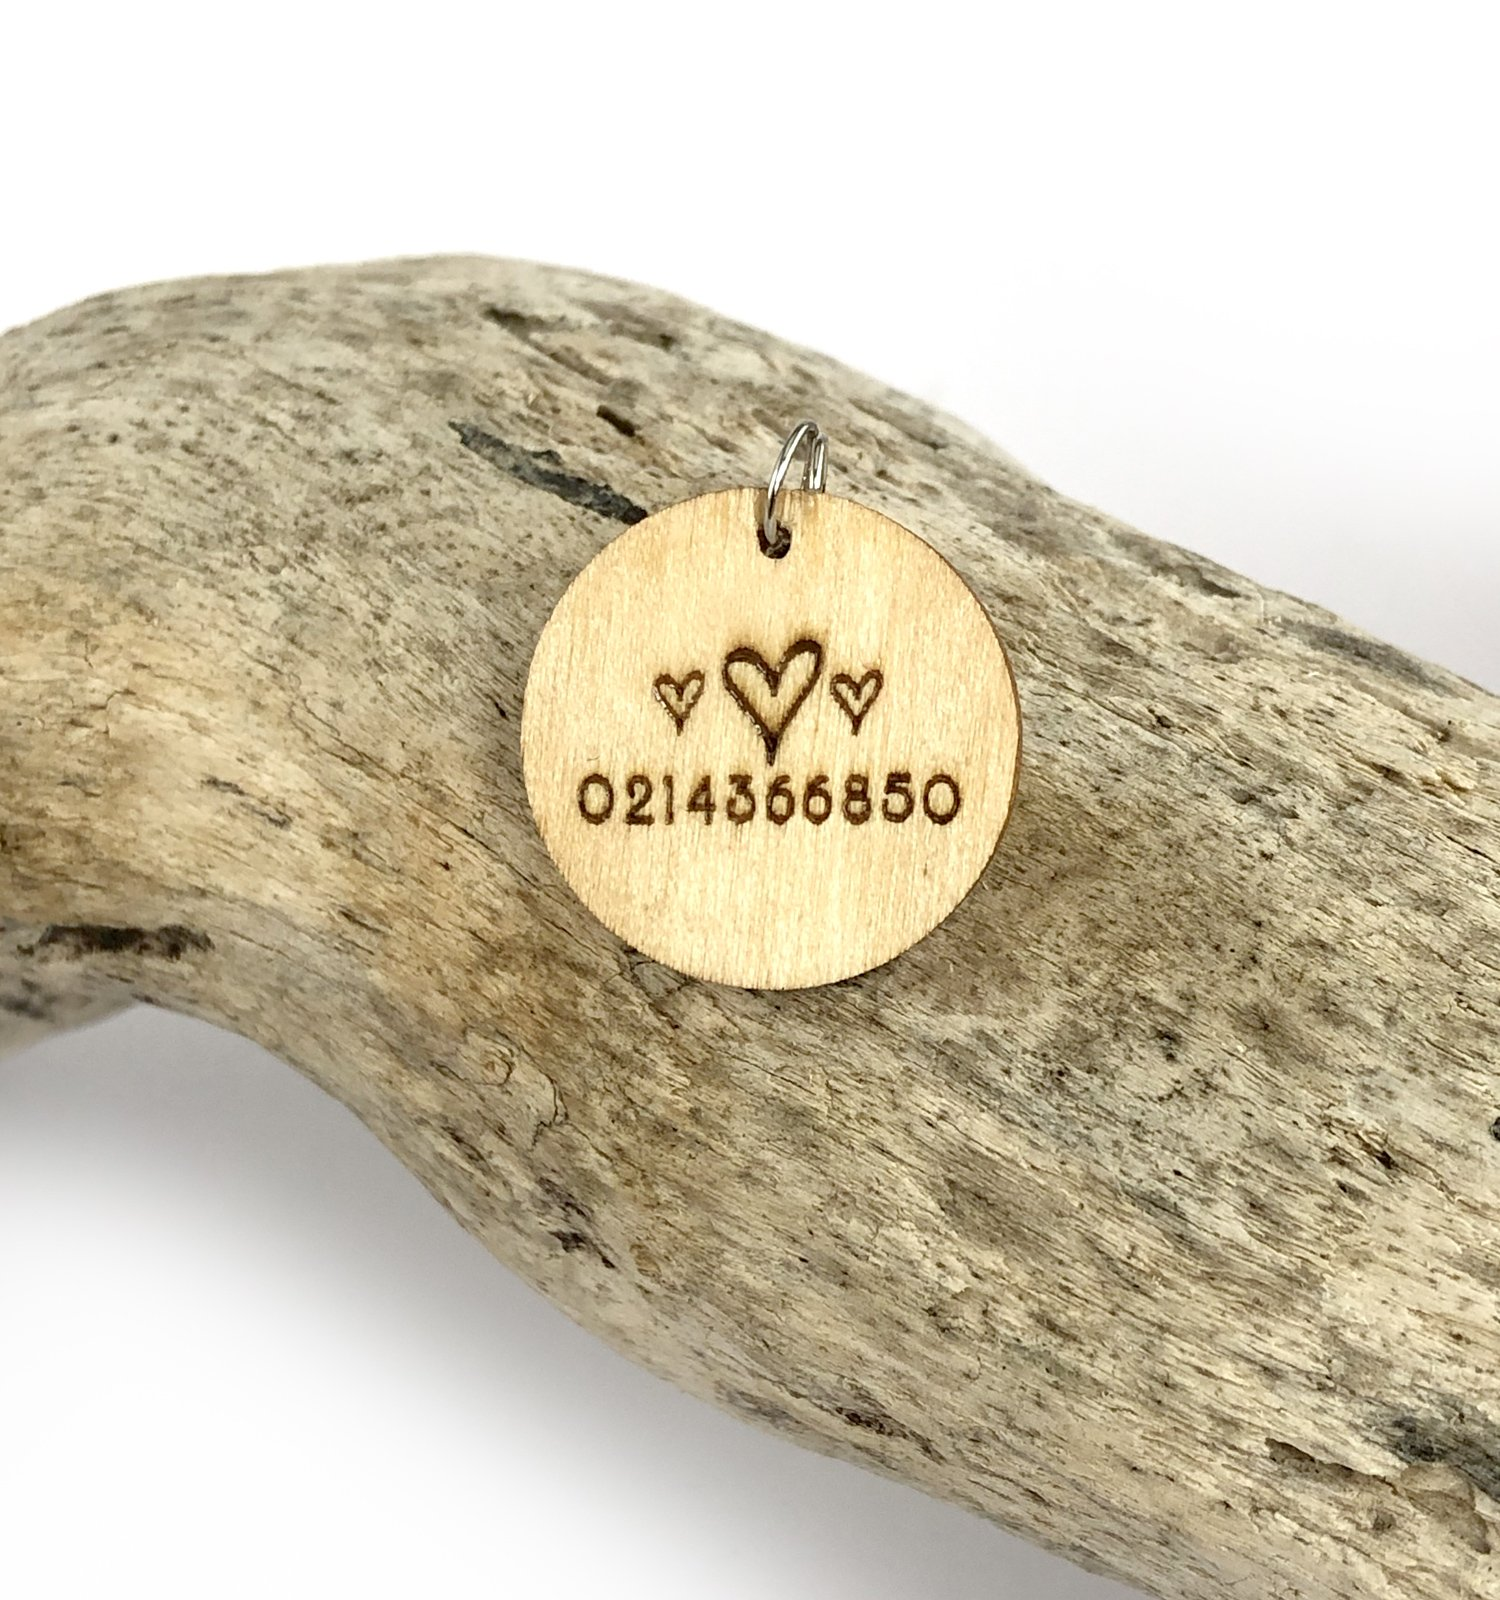 Dog Pet ID Tag Wooden with phone number